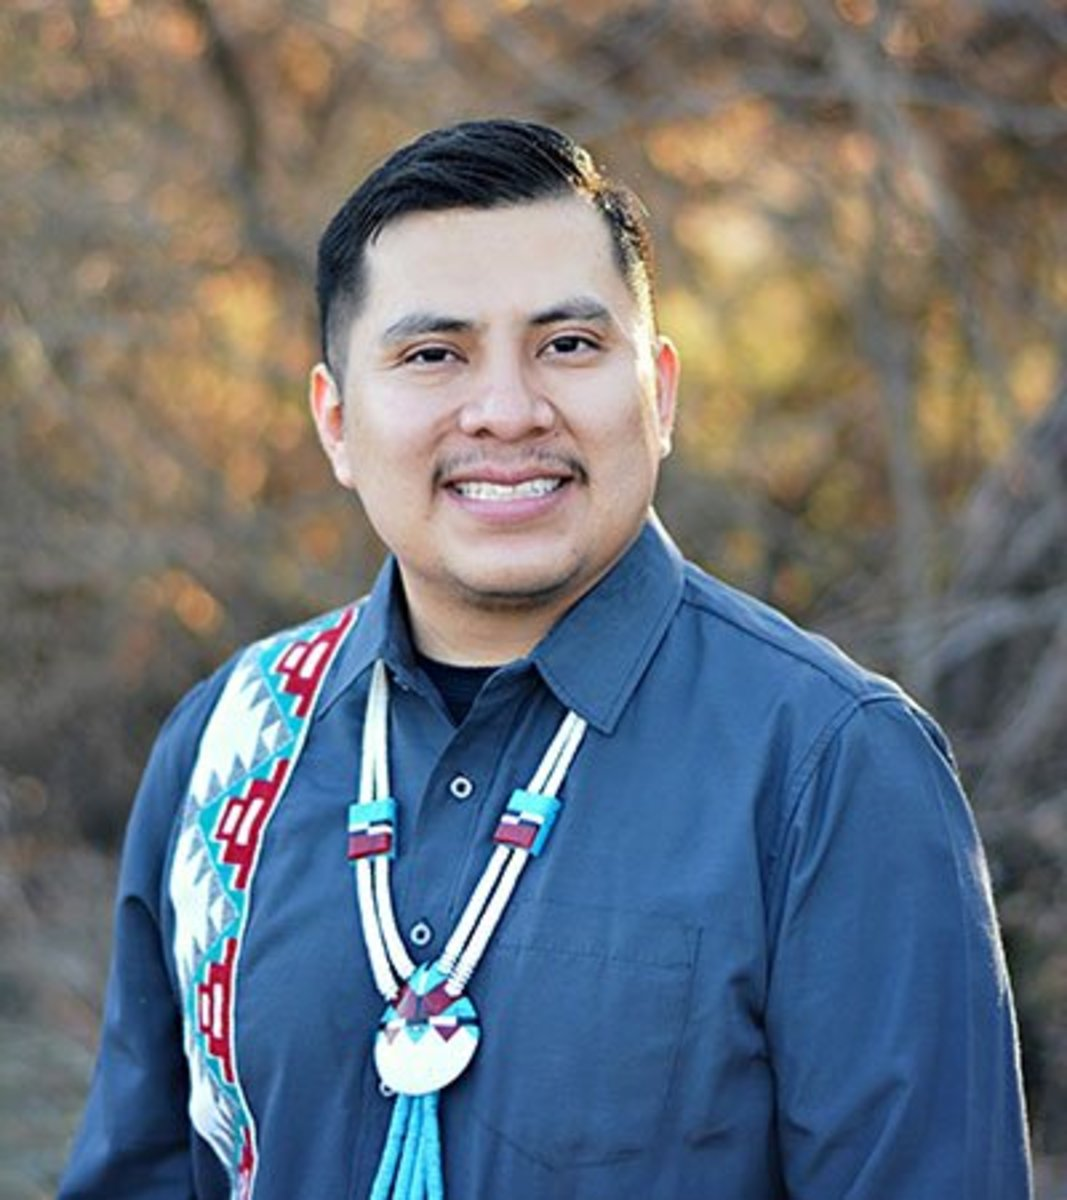 """Joshuaa Allison-Burbank, who is Navajo and Acoma, runs his own private speech therapy group. He used to spend his days traveling across the Navajo reservation providing care. Now he's using telehealth. """"It's a whole new normal when it comes to delivery of clinical therapy services."""" (Photo courtesy of Little Moccasins Education Services)"""